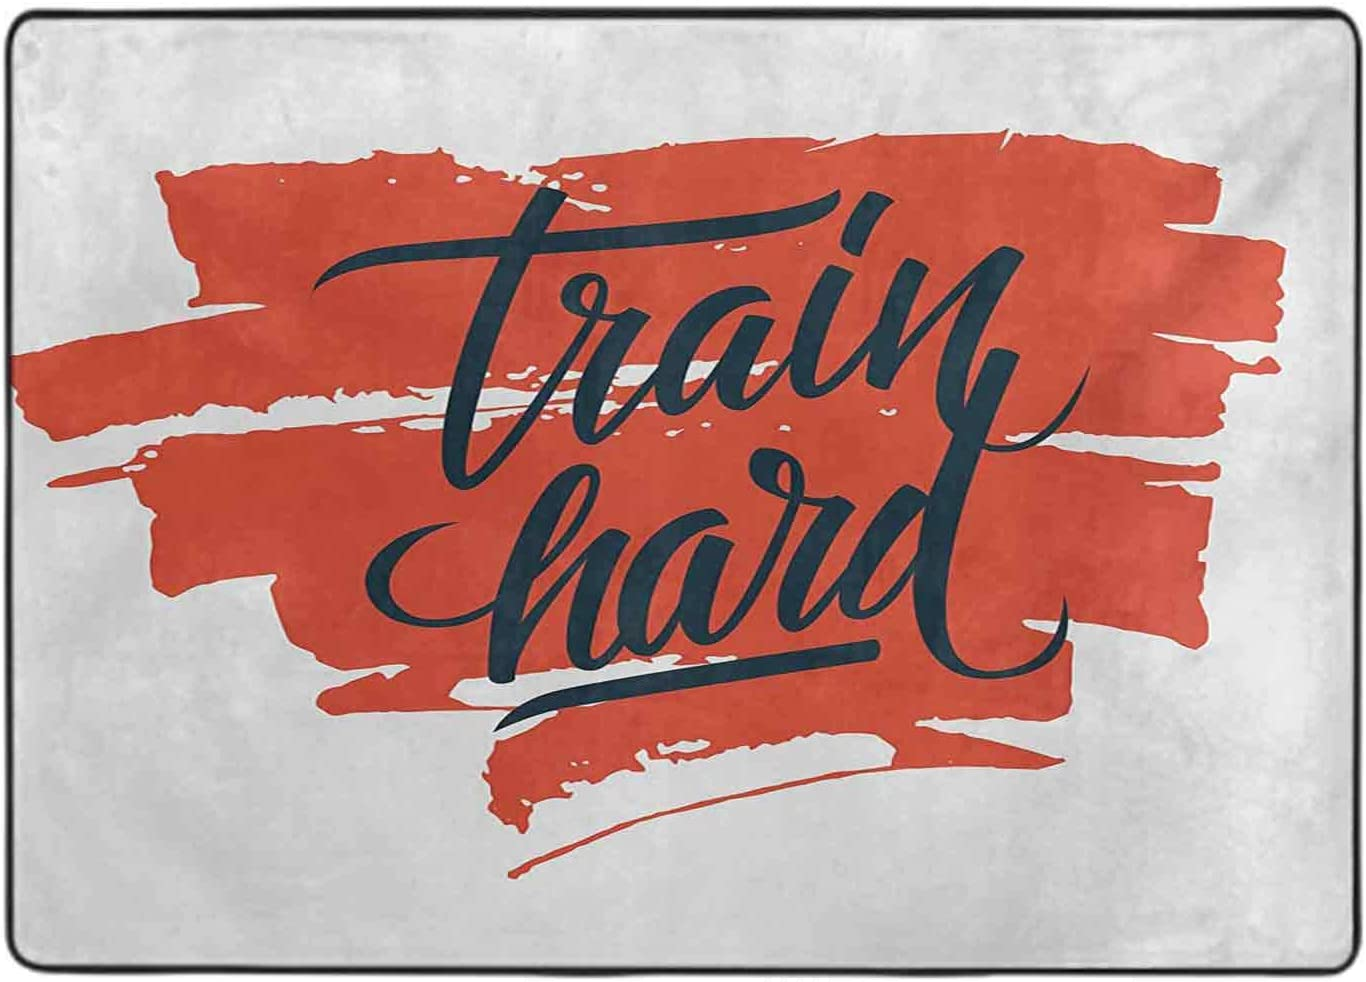 Collection Area Rug Train Sales results No. 1 Hard on St Inspirational Brush Phrase Popular